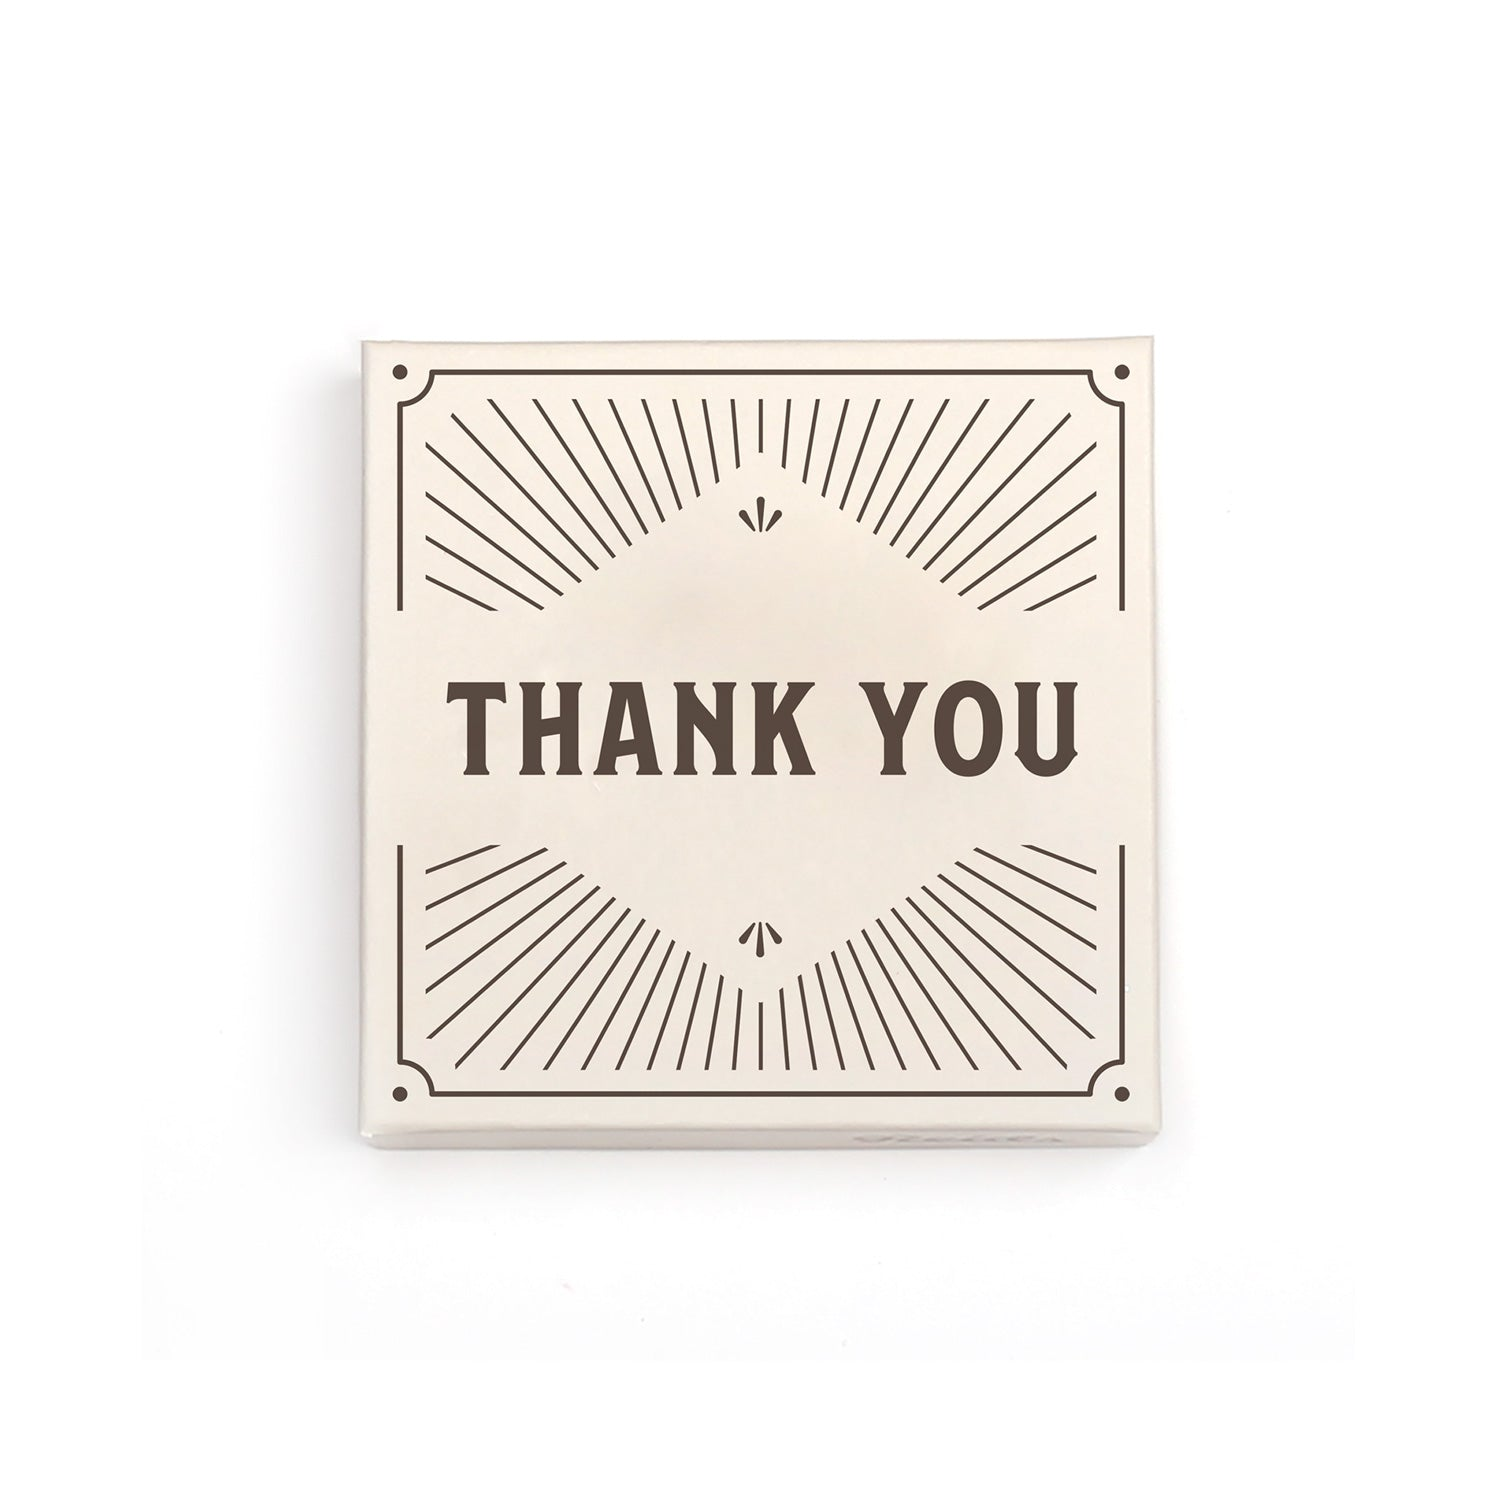 1/2 lb thank you box image. Cream box with brown thank you, and decorative lines